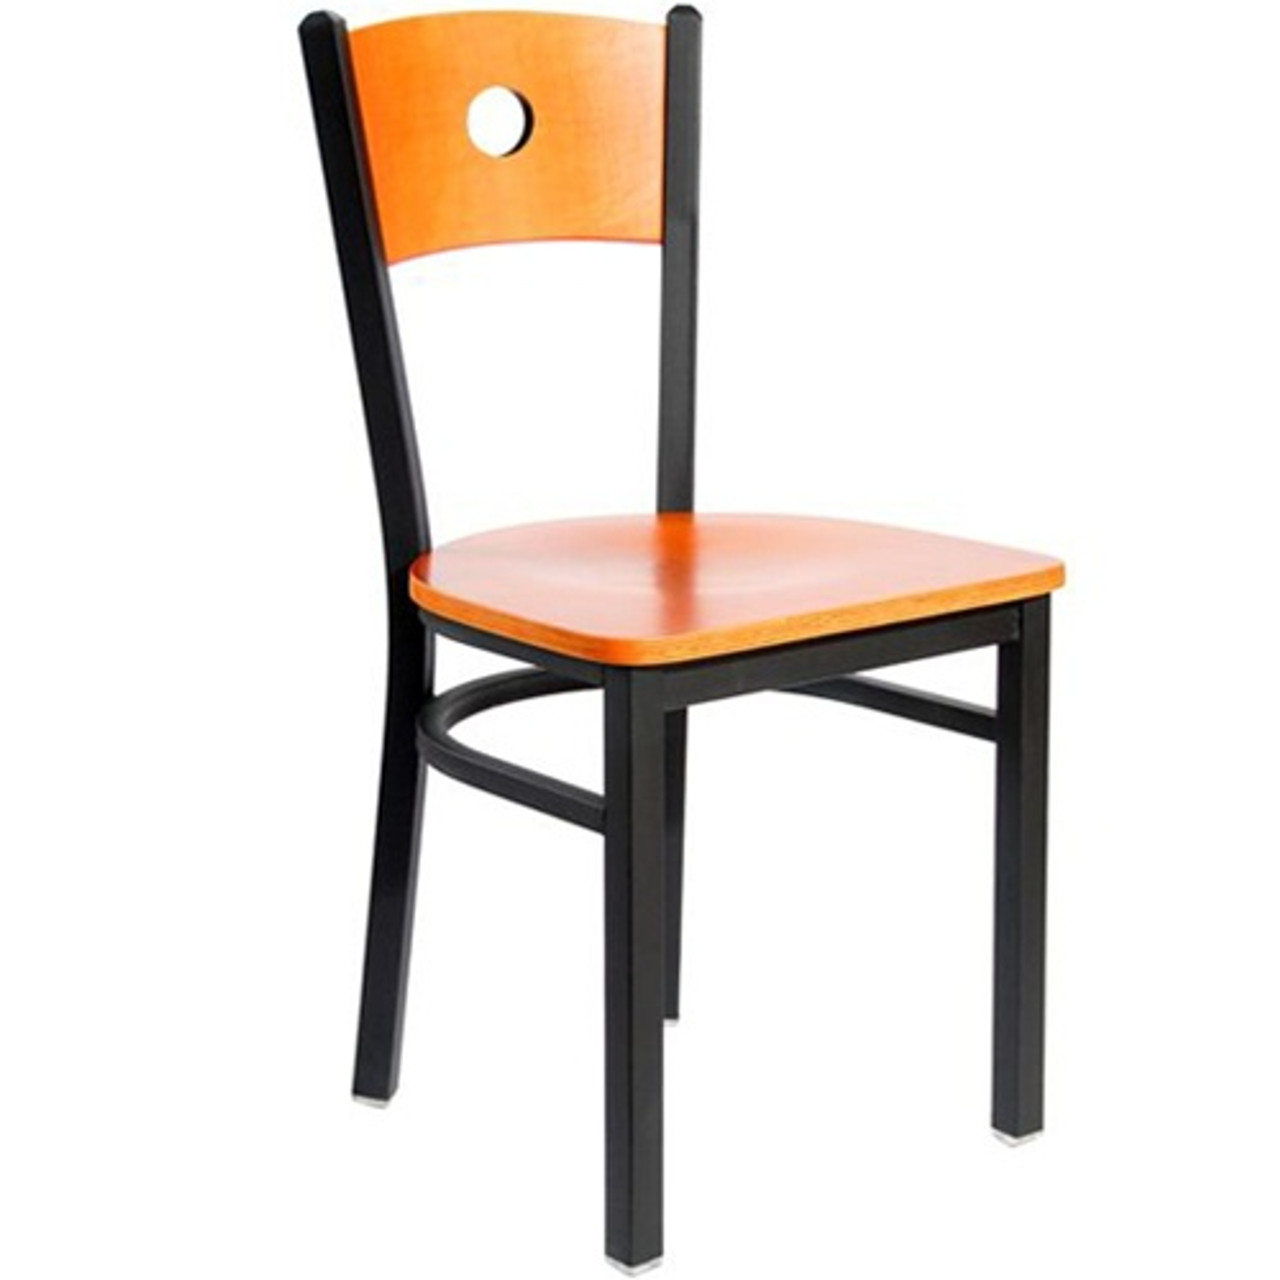 Bfm Seating Darby Black Metal Circle Wood Back Restaurant Chair With Wood Seat 2152c Sbw